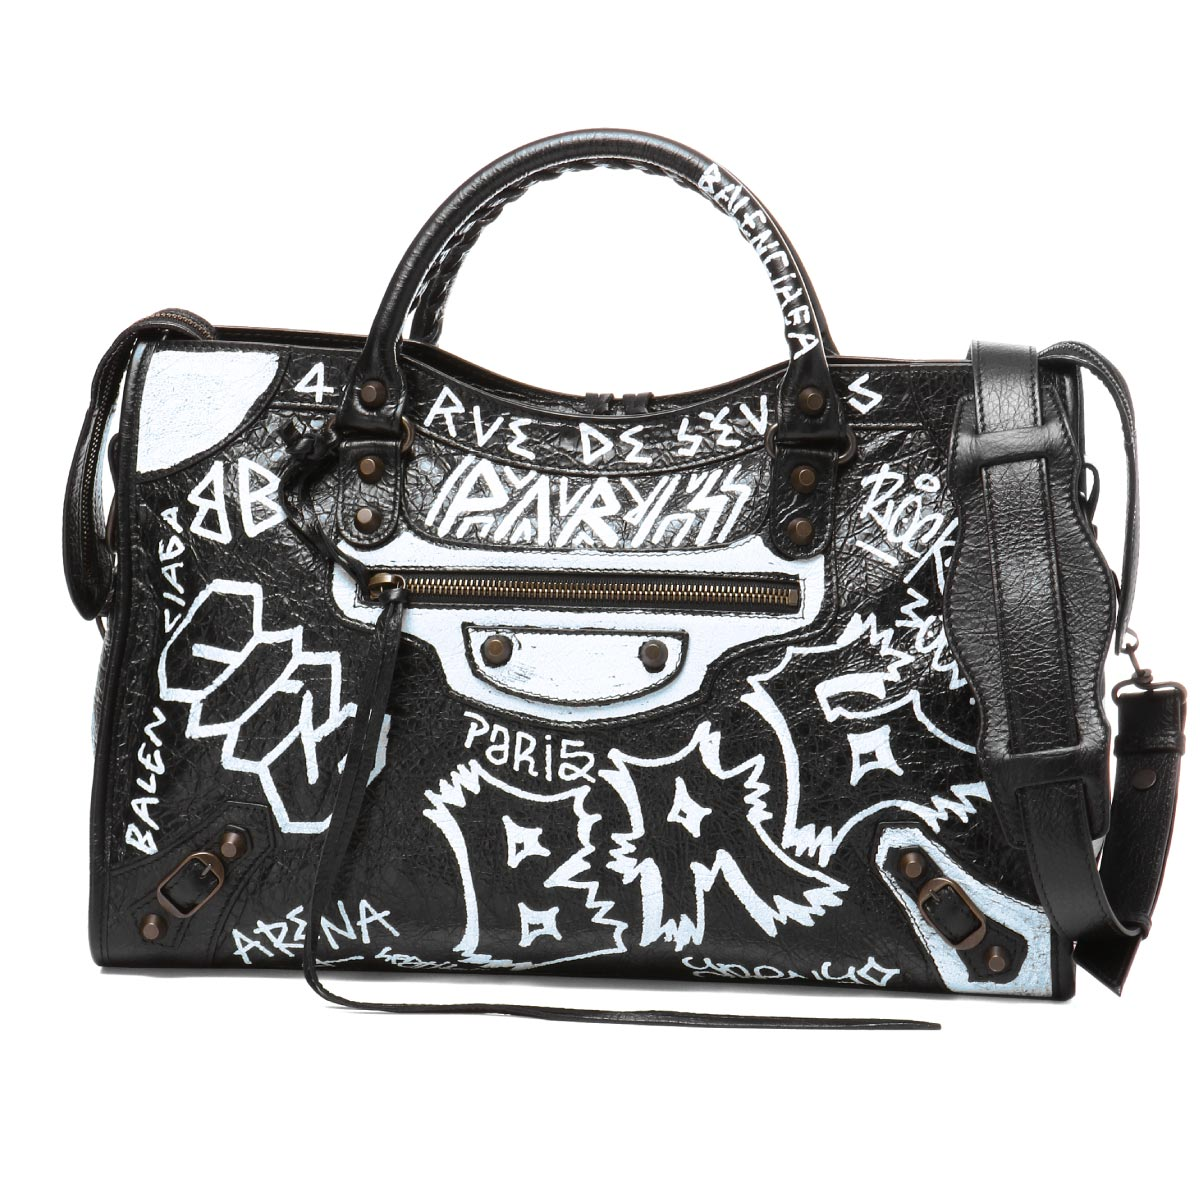 cc5692839ef 505550 バレンシアガ BALENCIAGA bag lady 0FE1T 1090 shoulders handbag medium  GRAFFITI CLASSIC CITY graffiti classical music city BLACK WHITE black  belonging ...